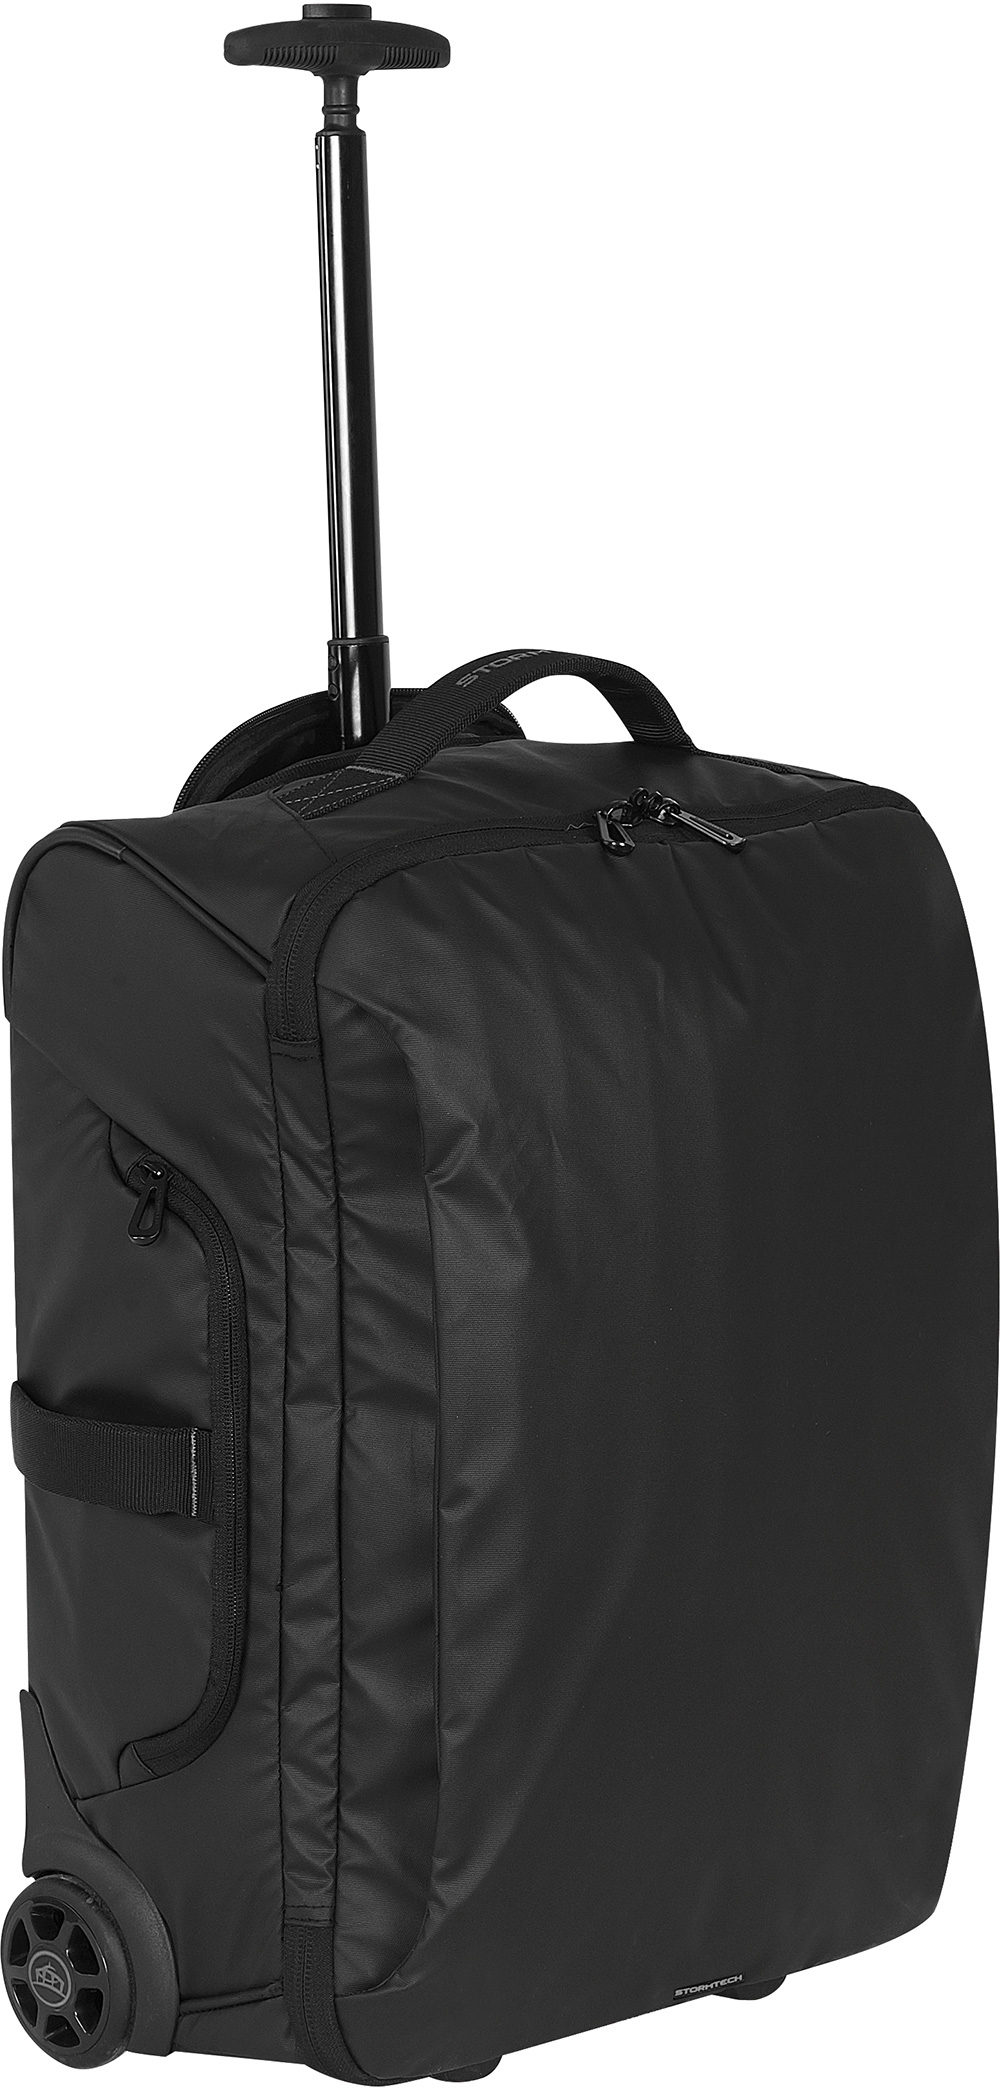 Stormtech FC-1 - Freestyle Carry On Luggage